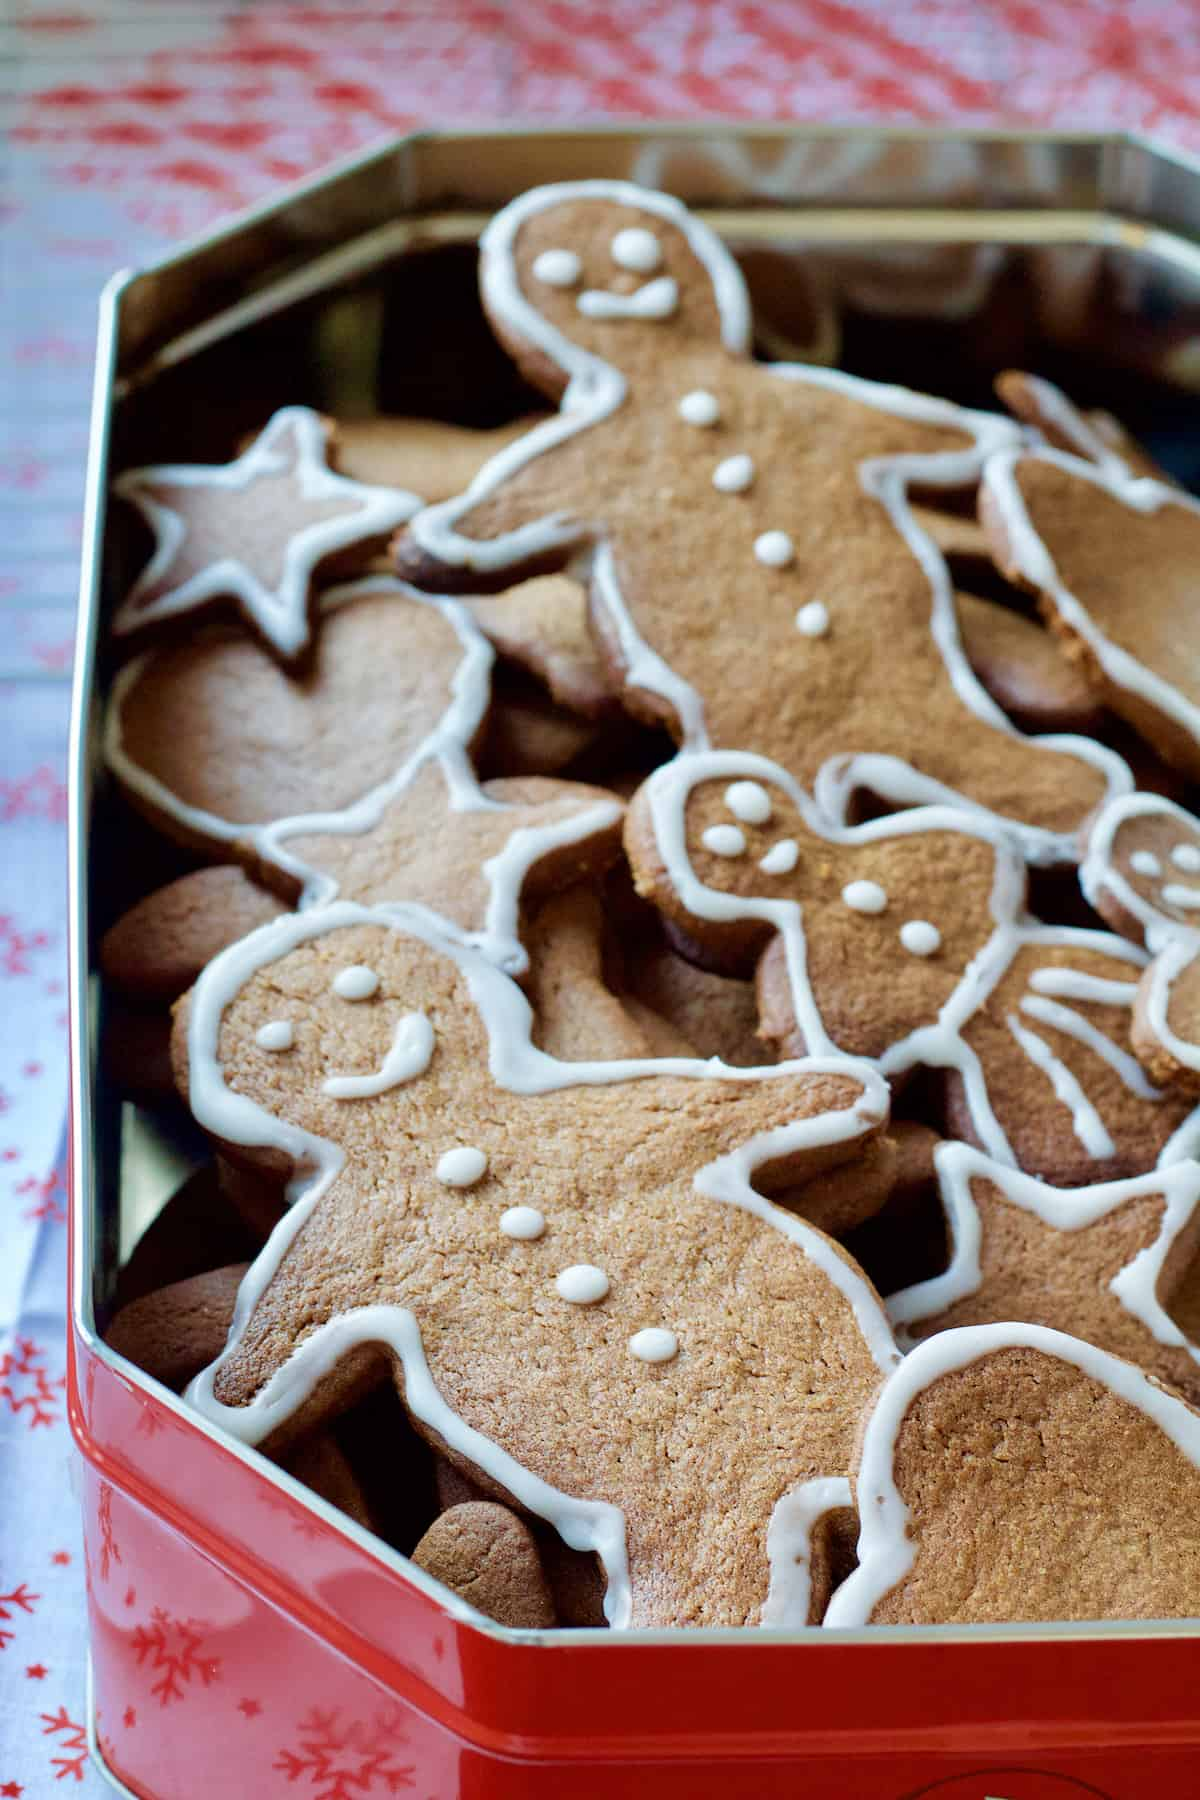 Decorated gingerbread biscuits in the tin.